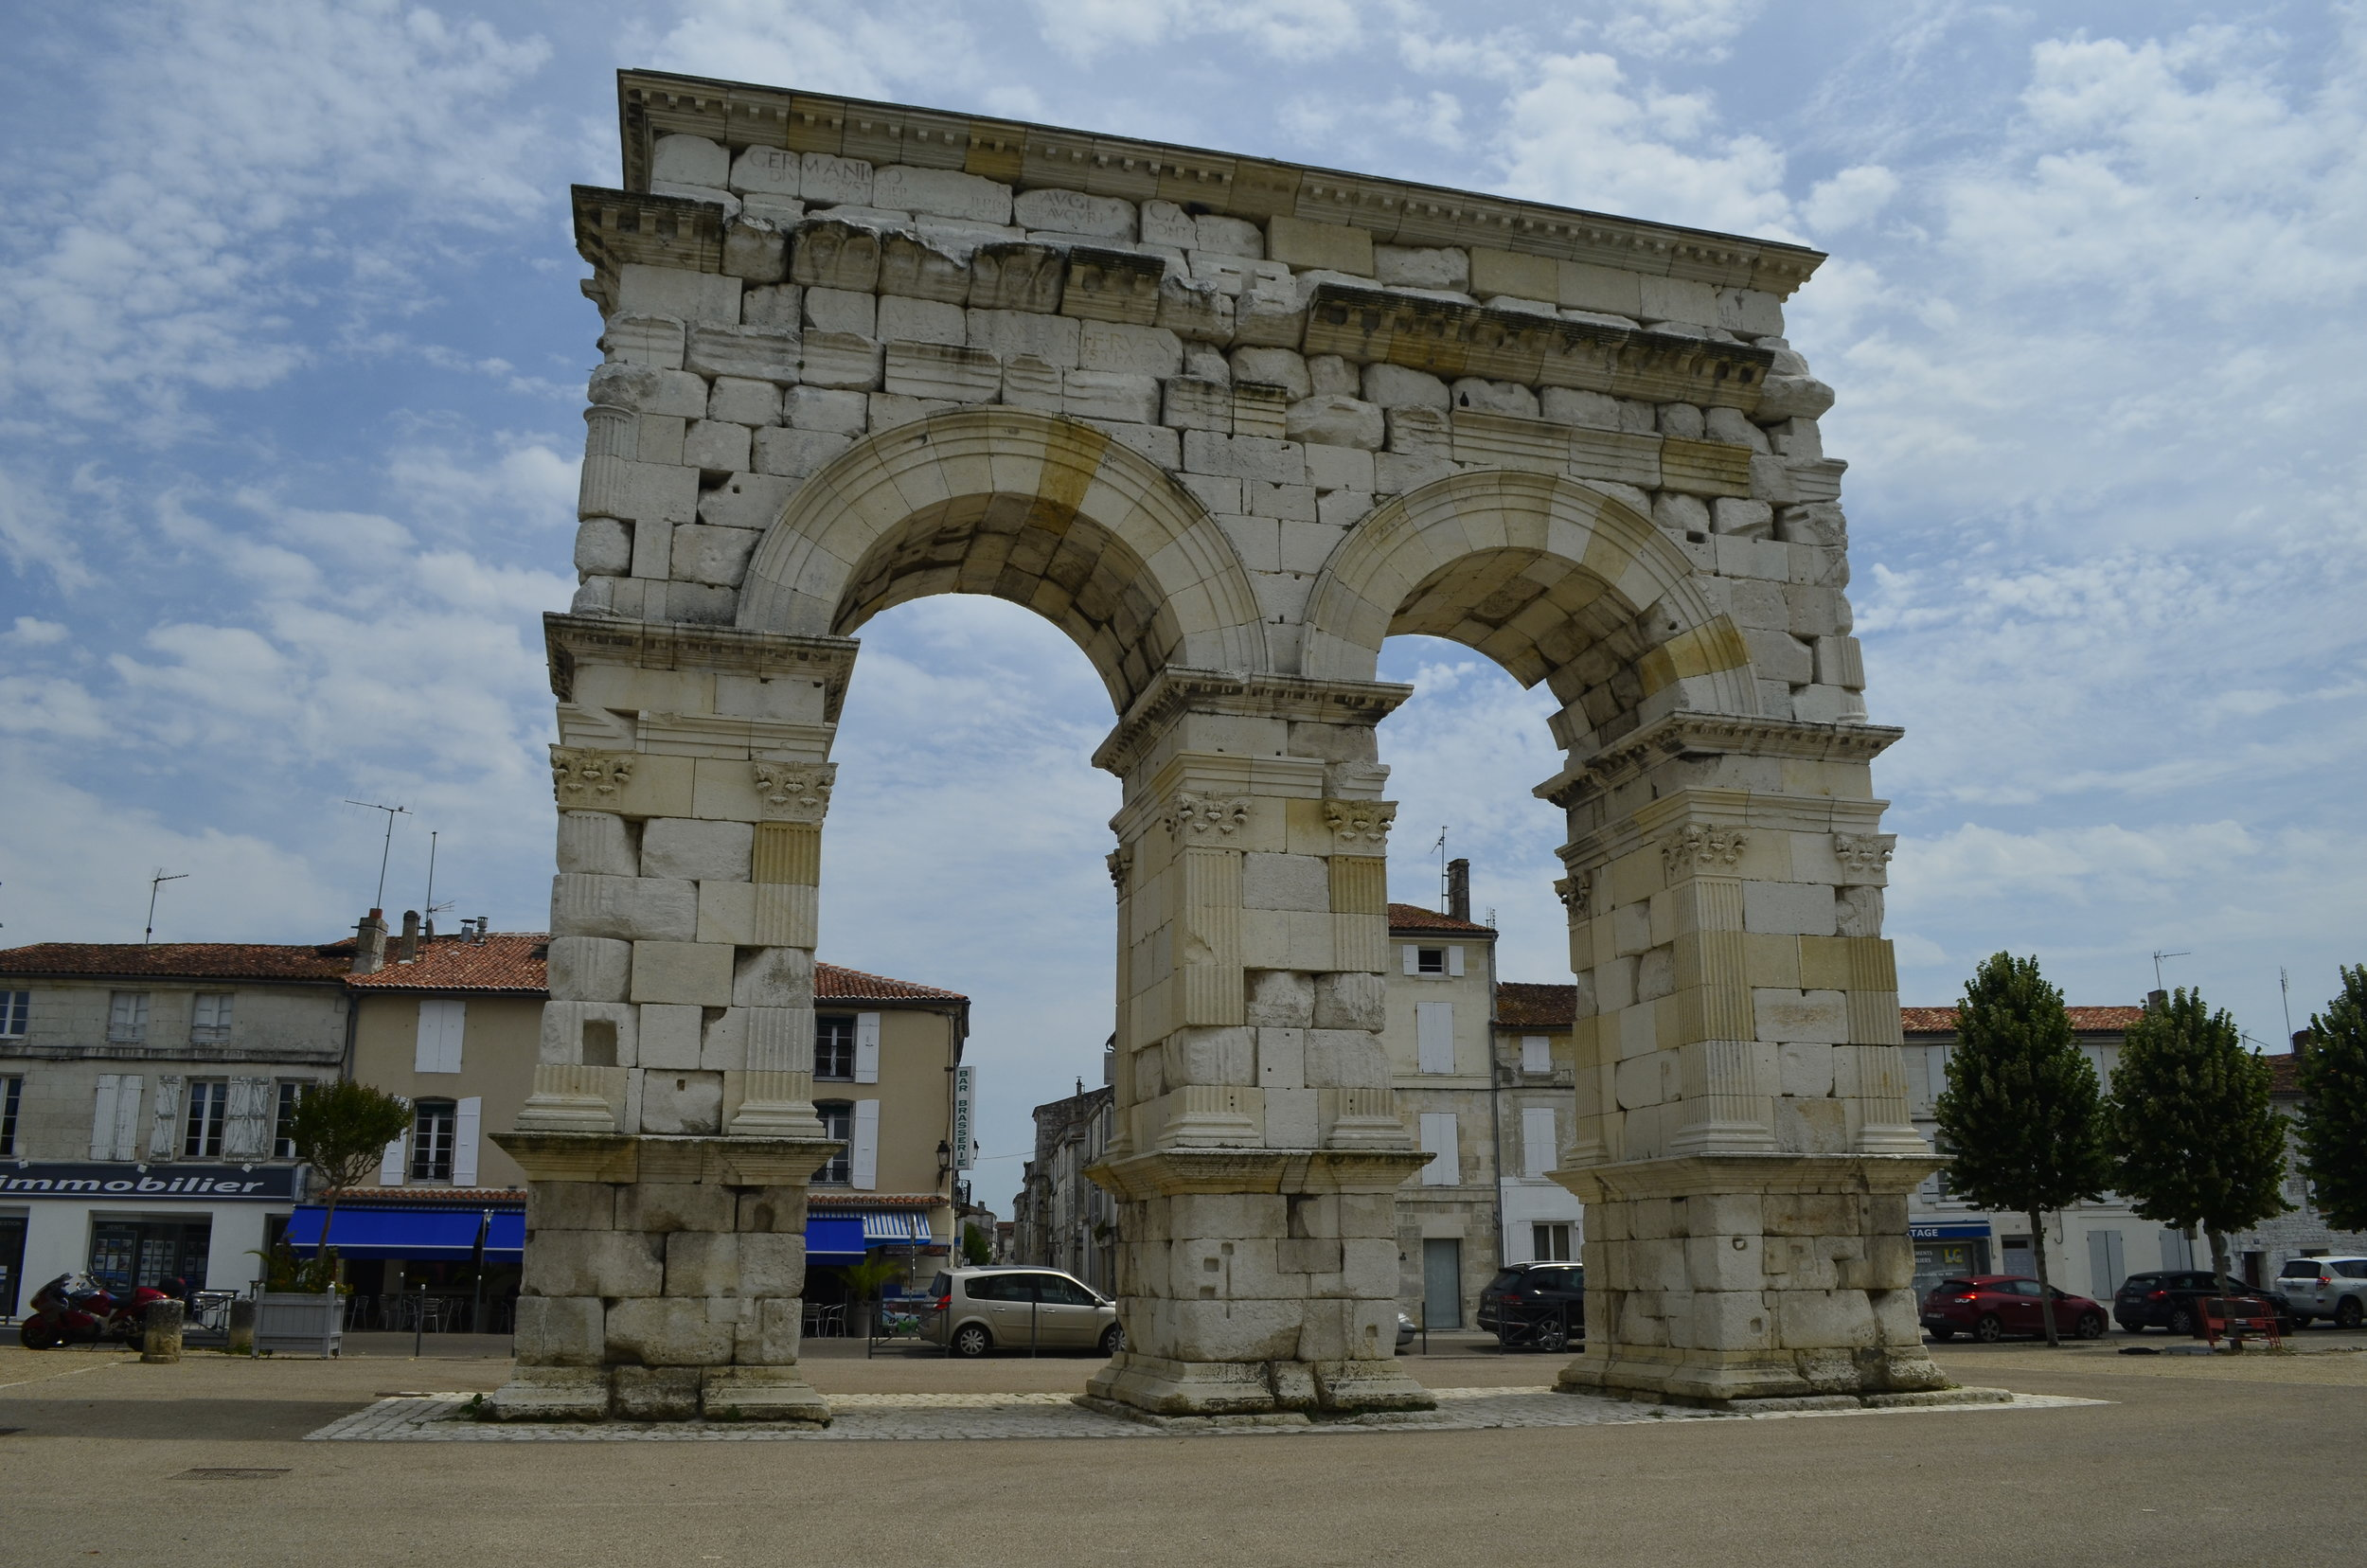 The Germanic Arch in Saintes.